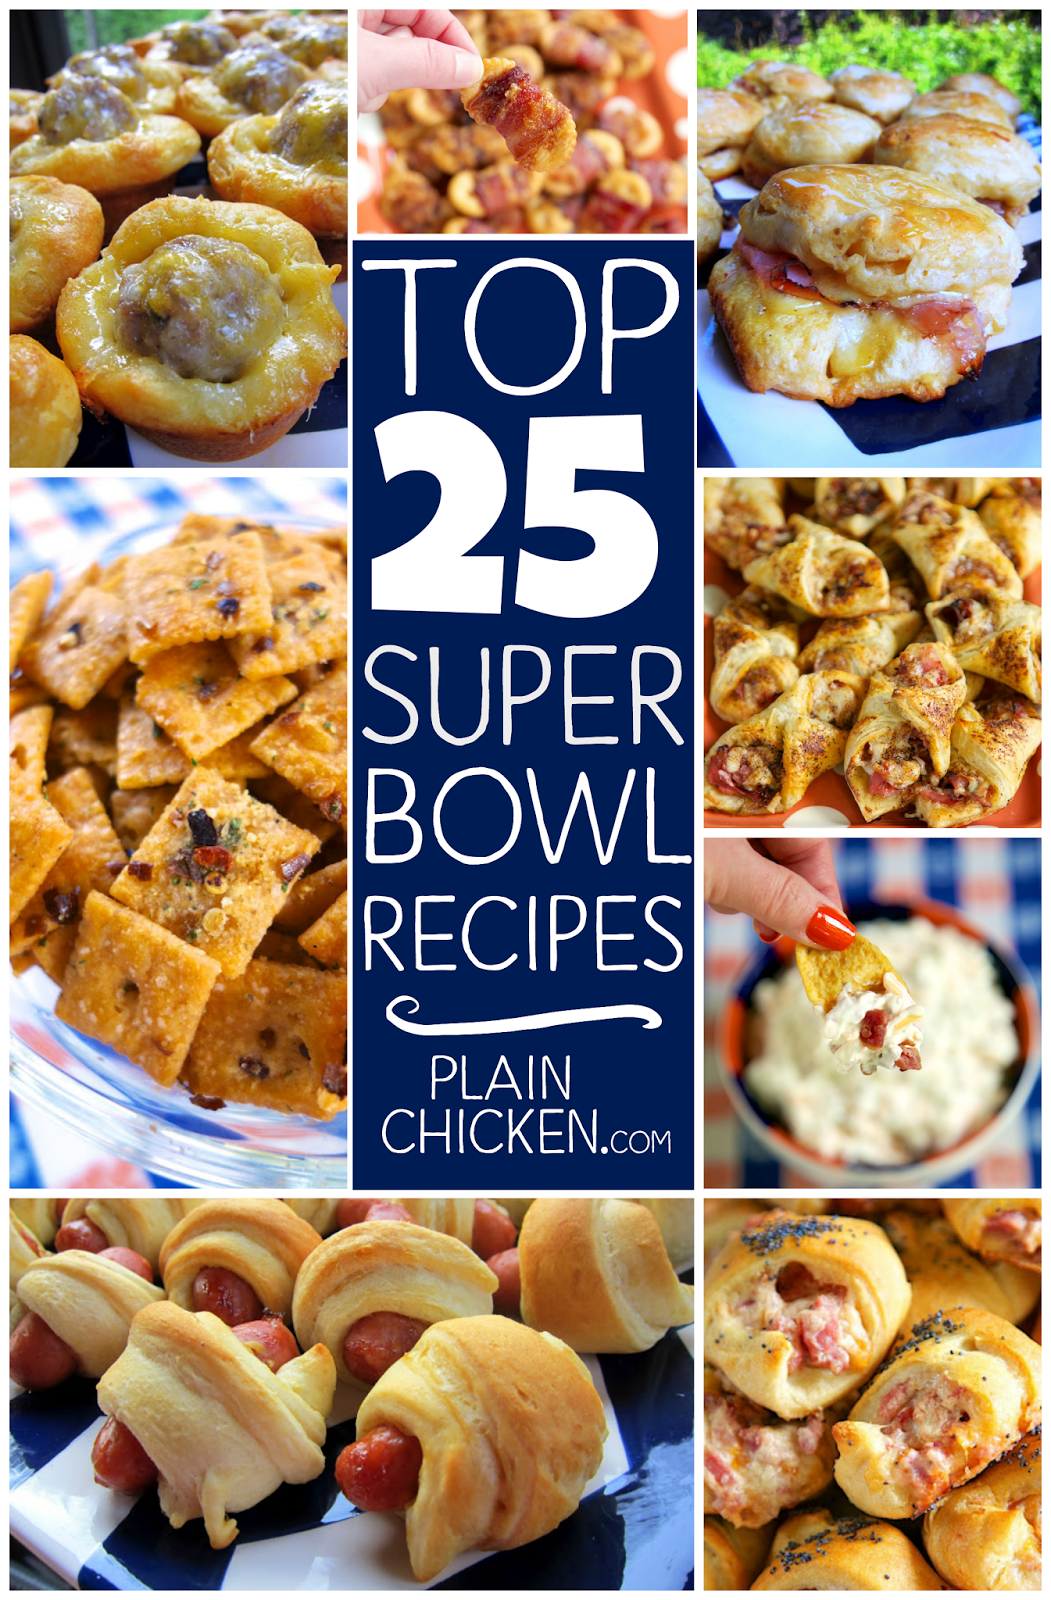 Best 25 Chanel Boy Bag Ideas On Pinterest: Top 25 Super Bowl Recipes